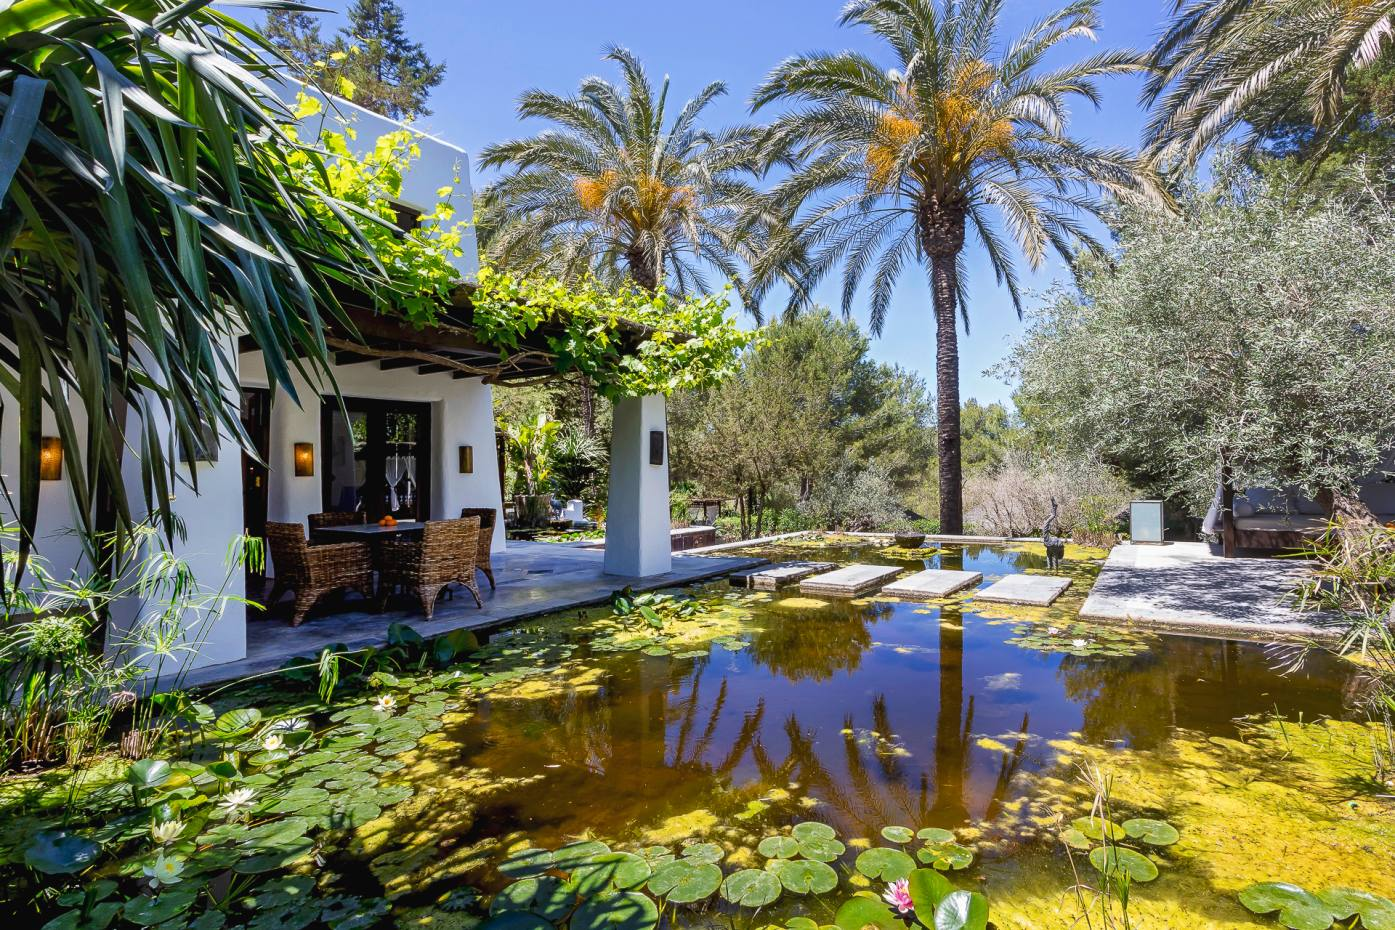 Atzaró hotel and spa has been one of Ibiza's most stylish destinations for 15 years